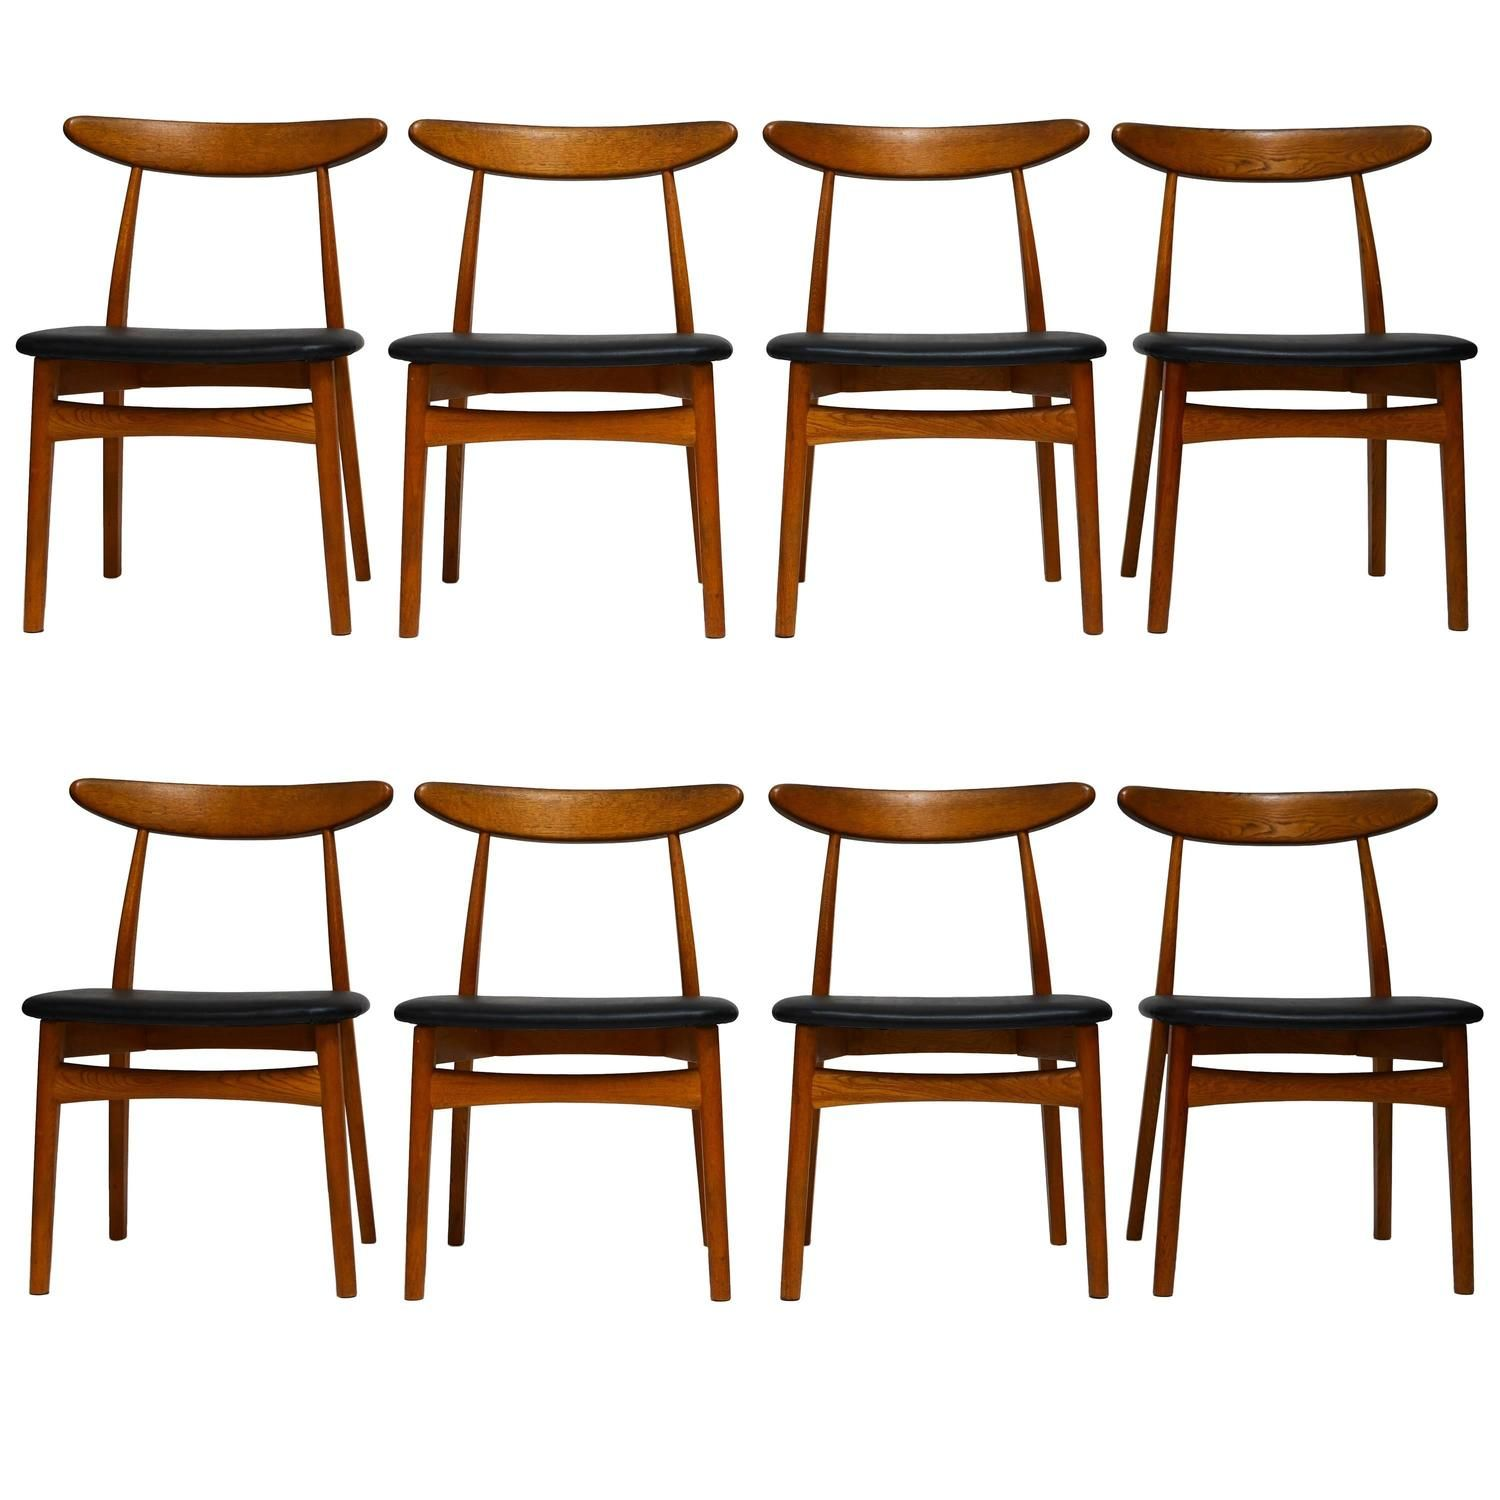 Japanese Modern Midcentury Dining Chairs From A Unique